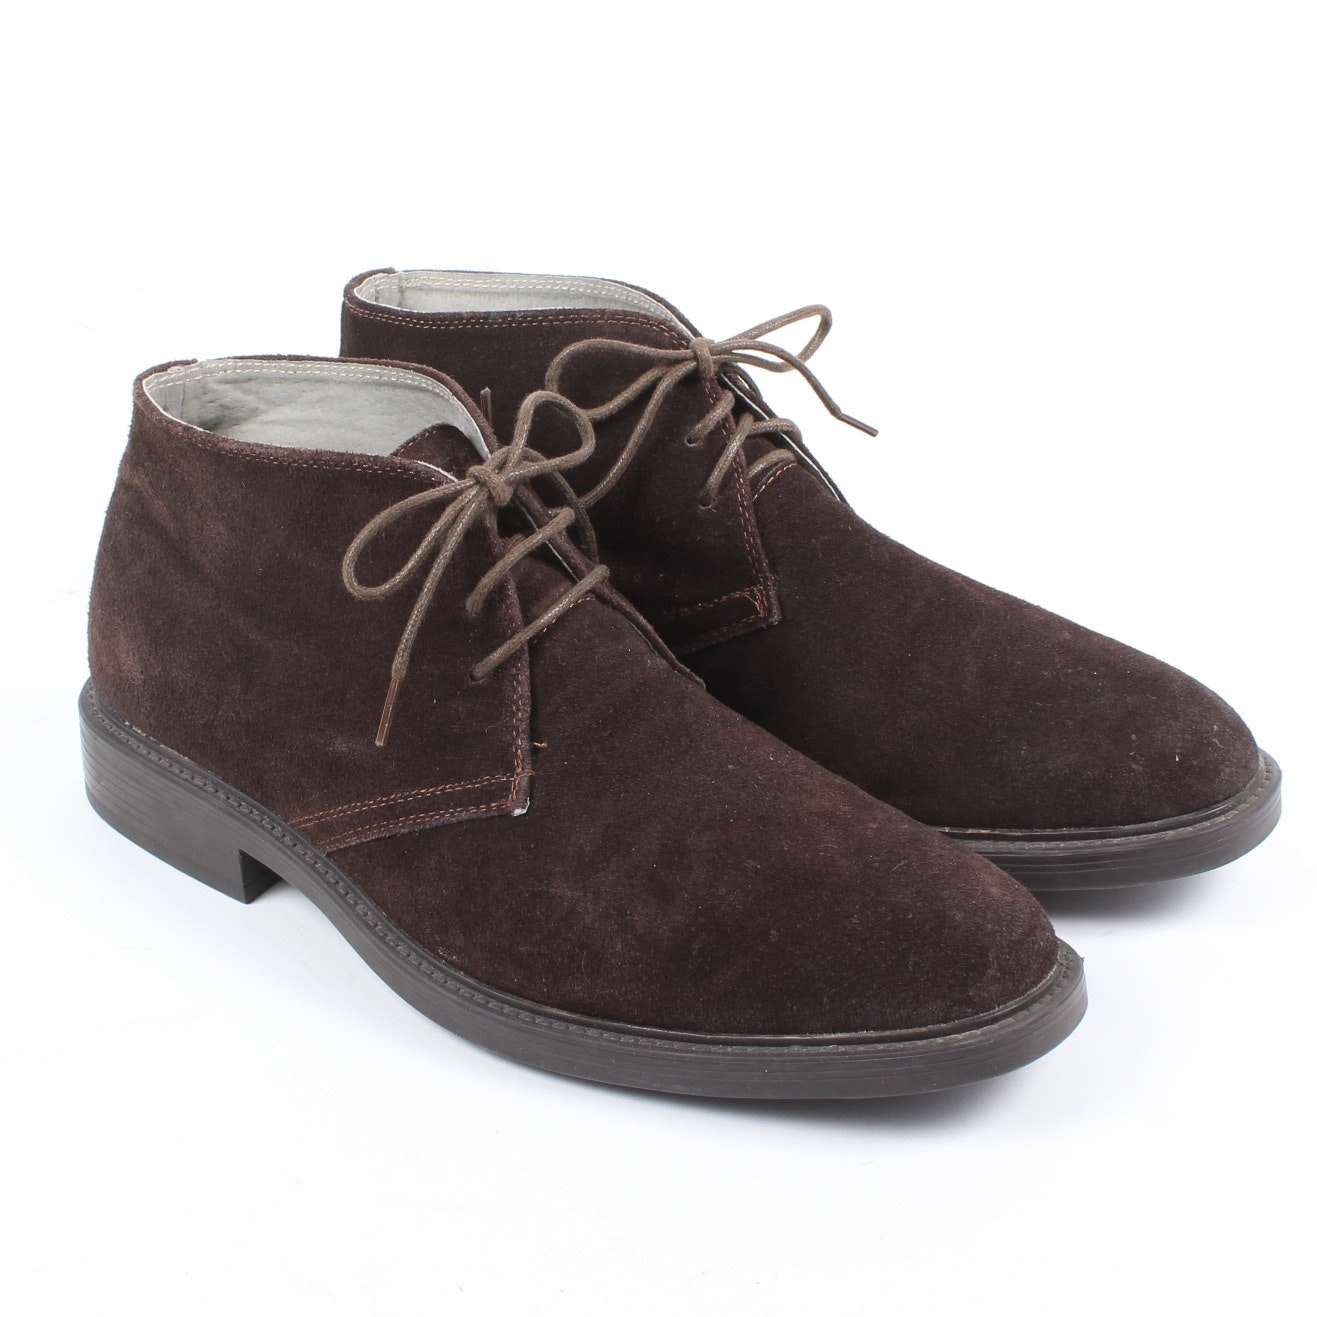 Men's English Laundry Suede Chukka Boots